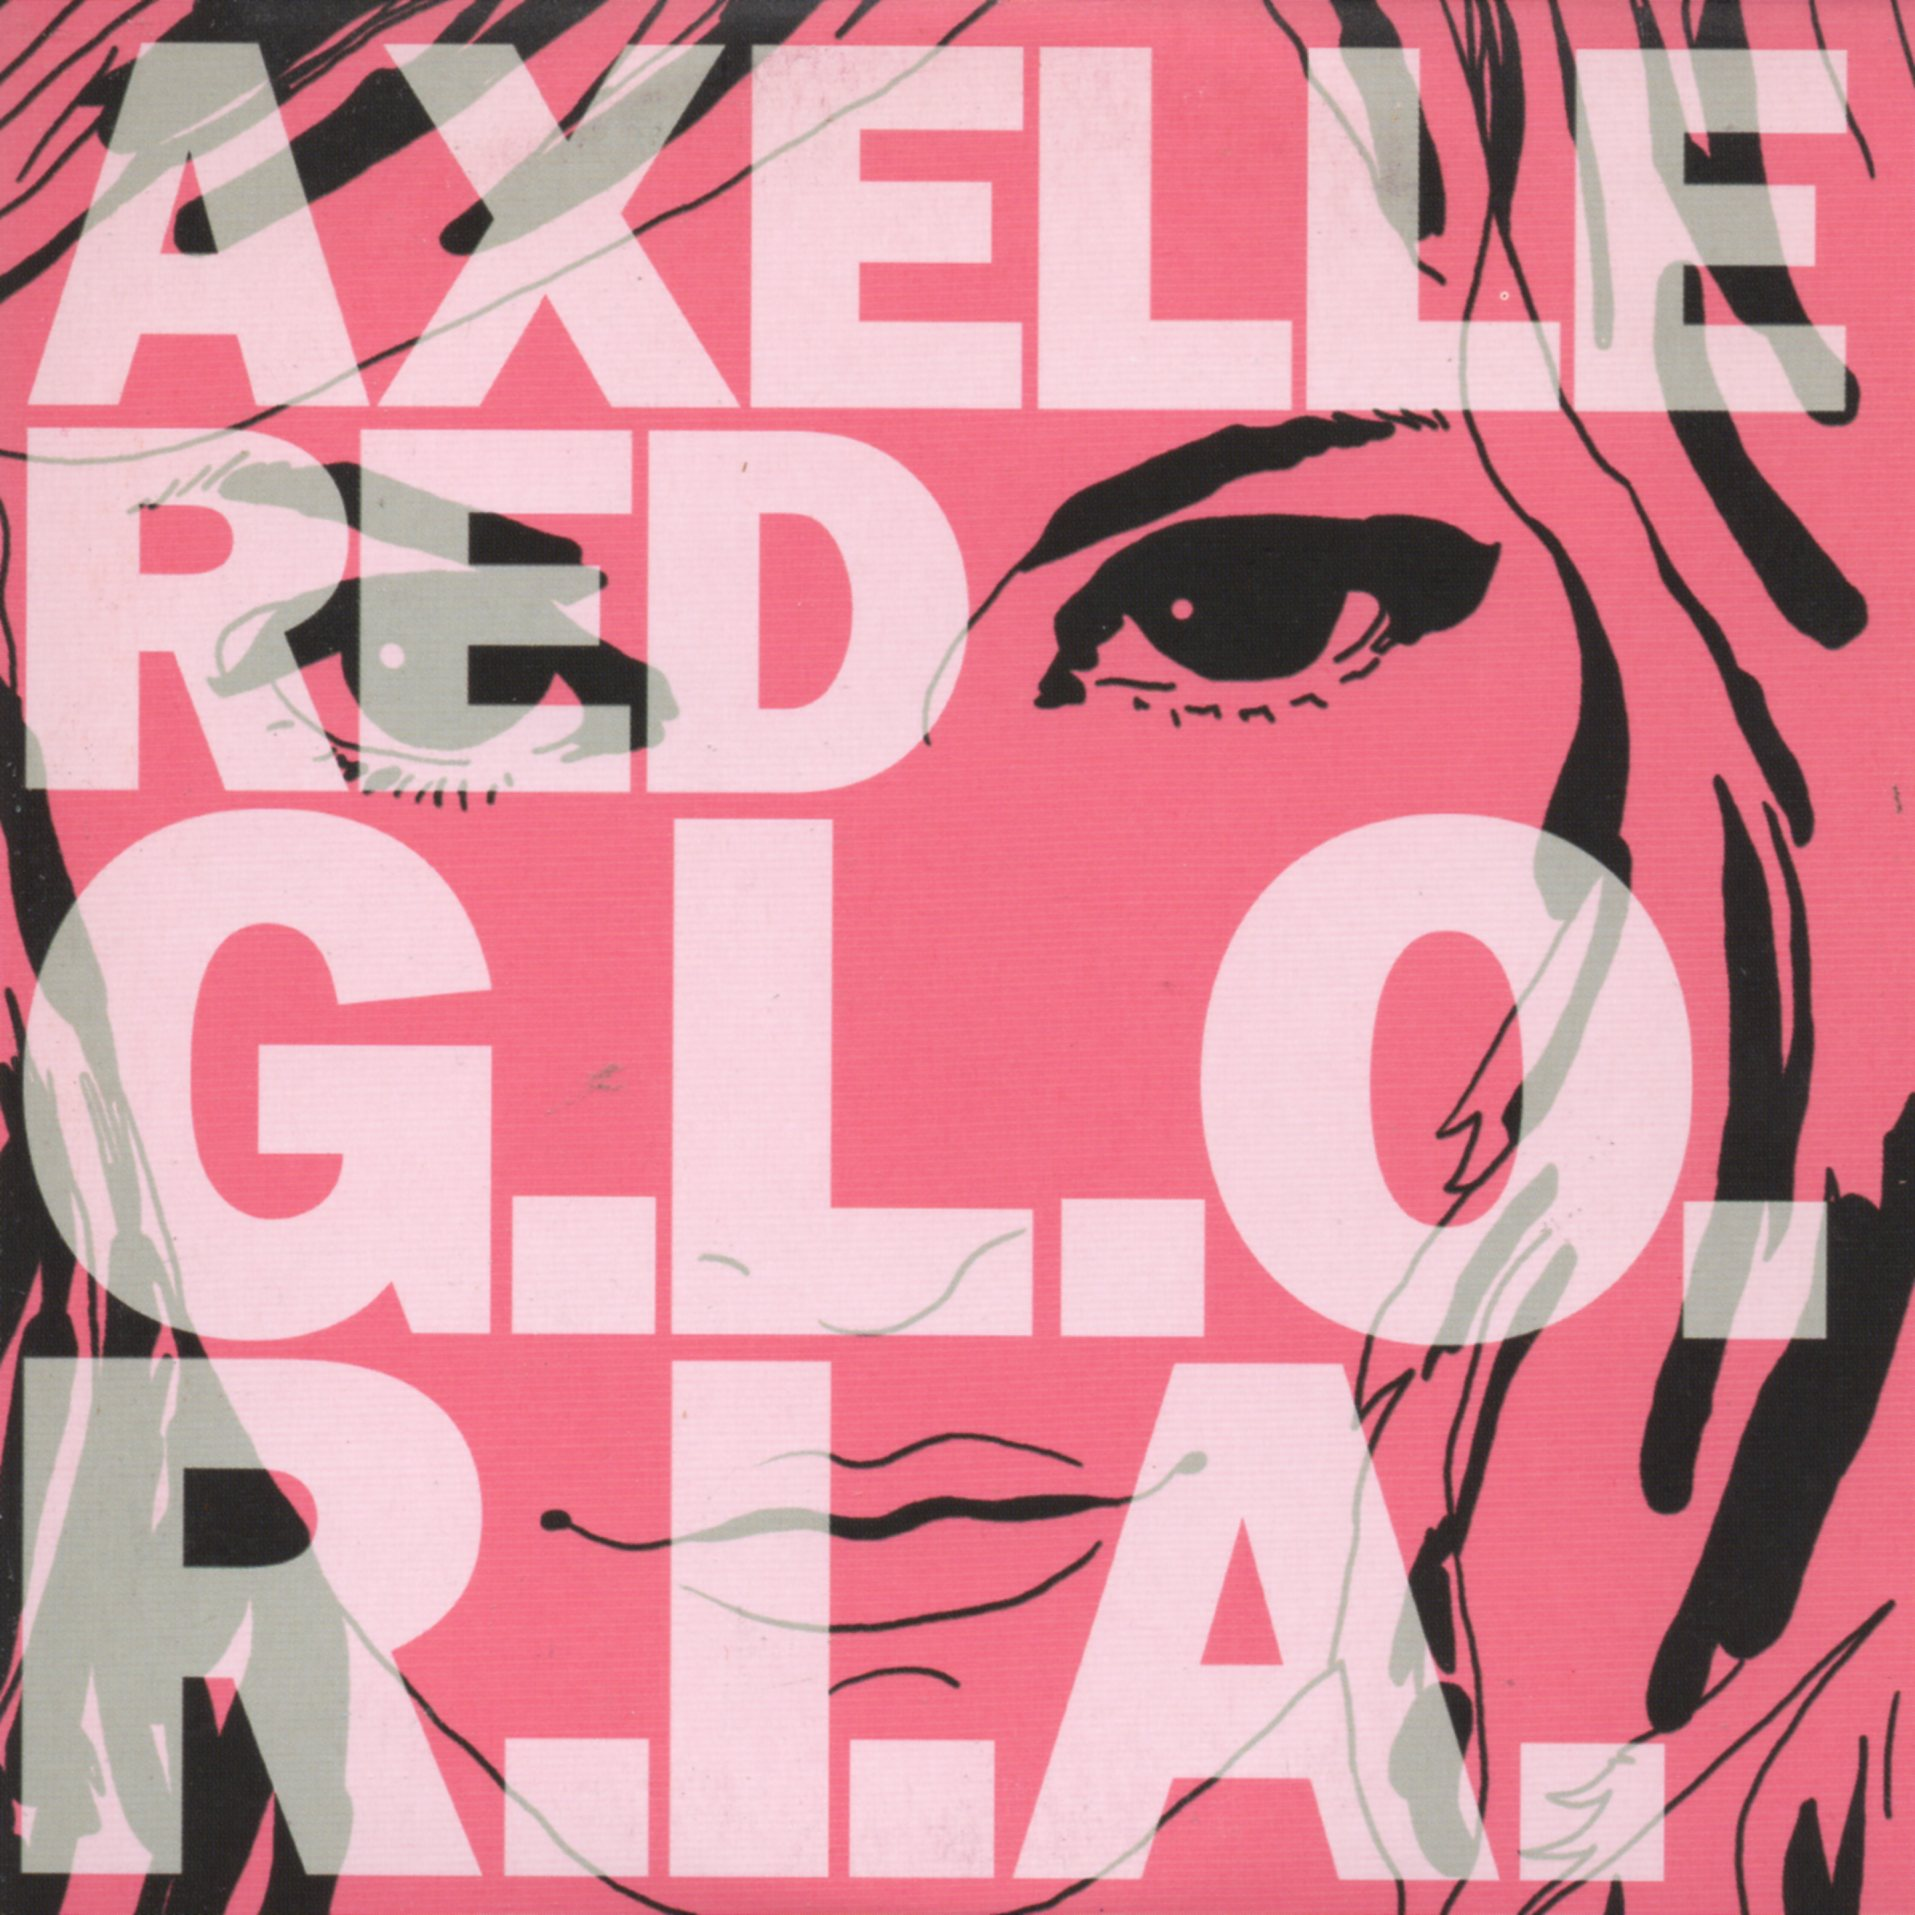 AXELLE RED - Gloria 2-Track CARD SLEEVE - CD single